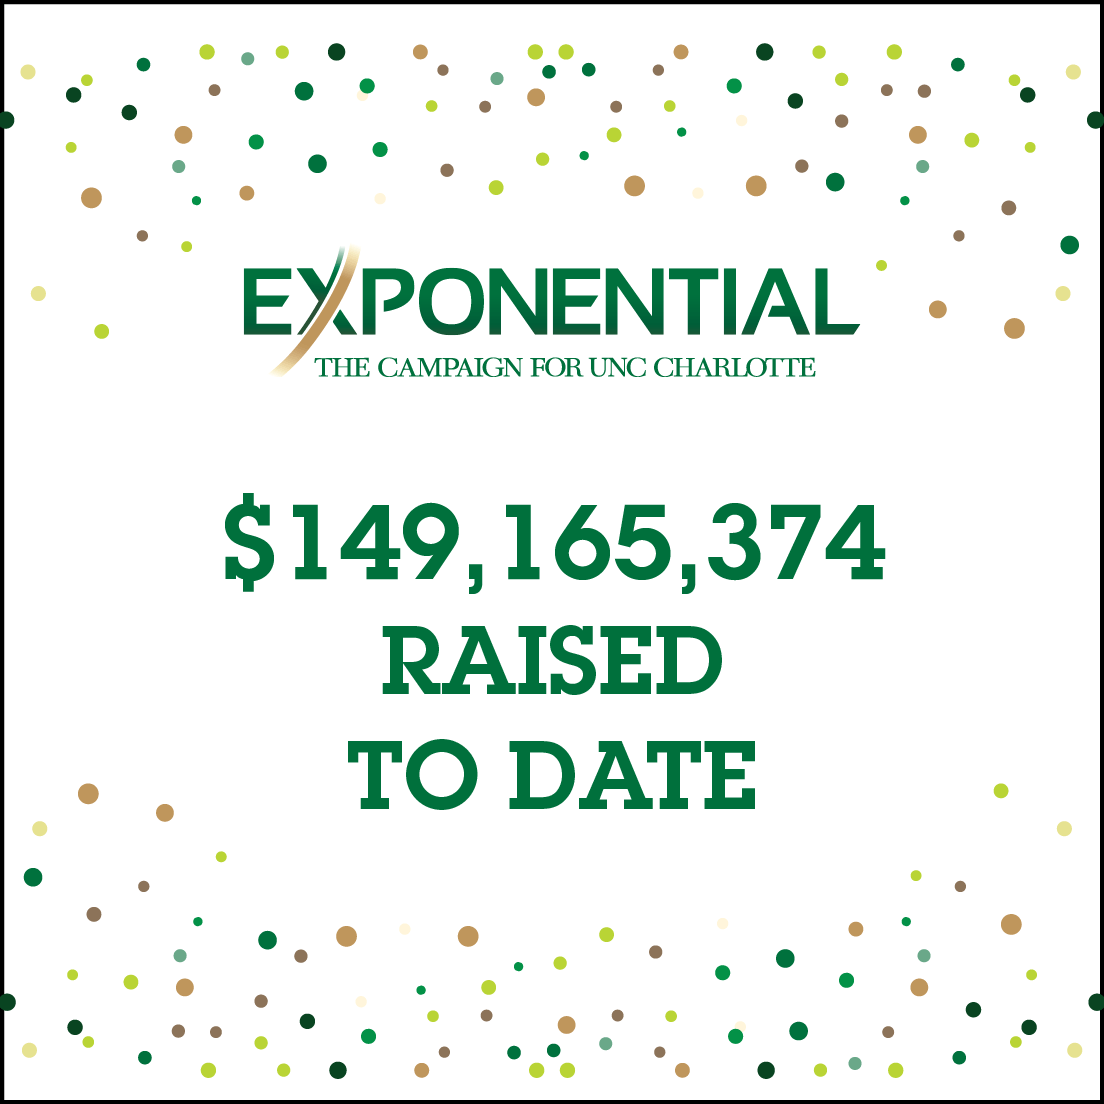 Exponential: $149,165,374 raised